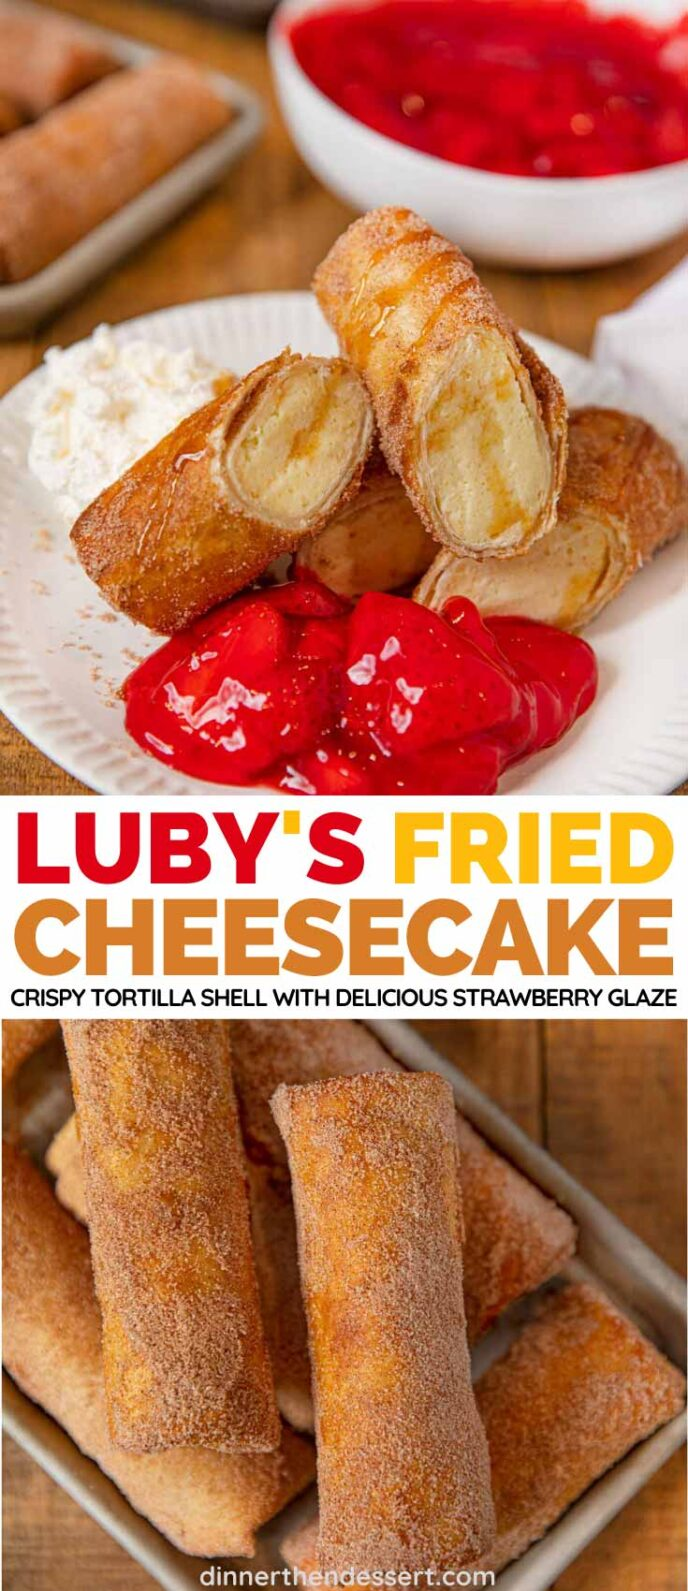 Luby's Fried Cheesecake collage